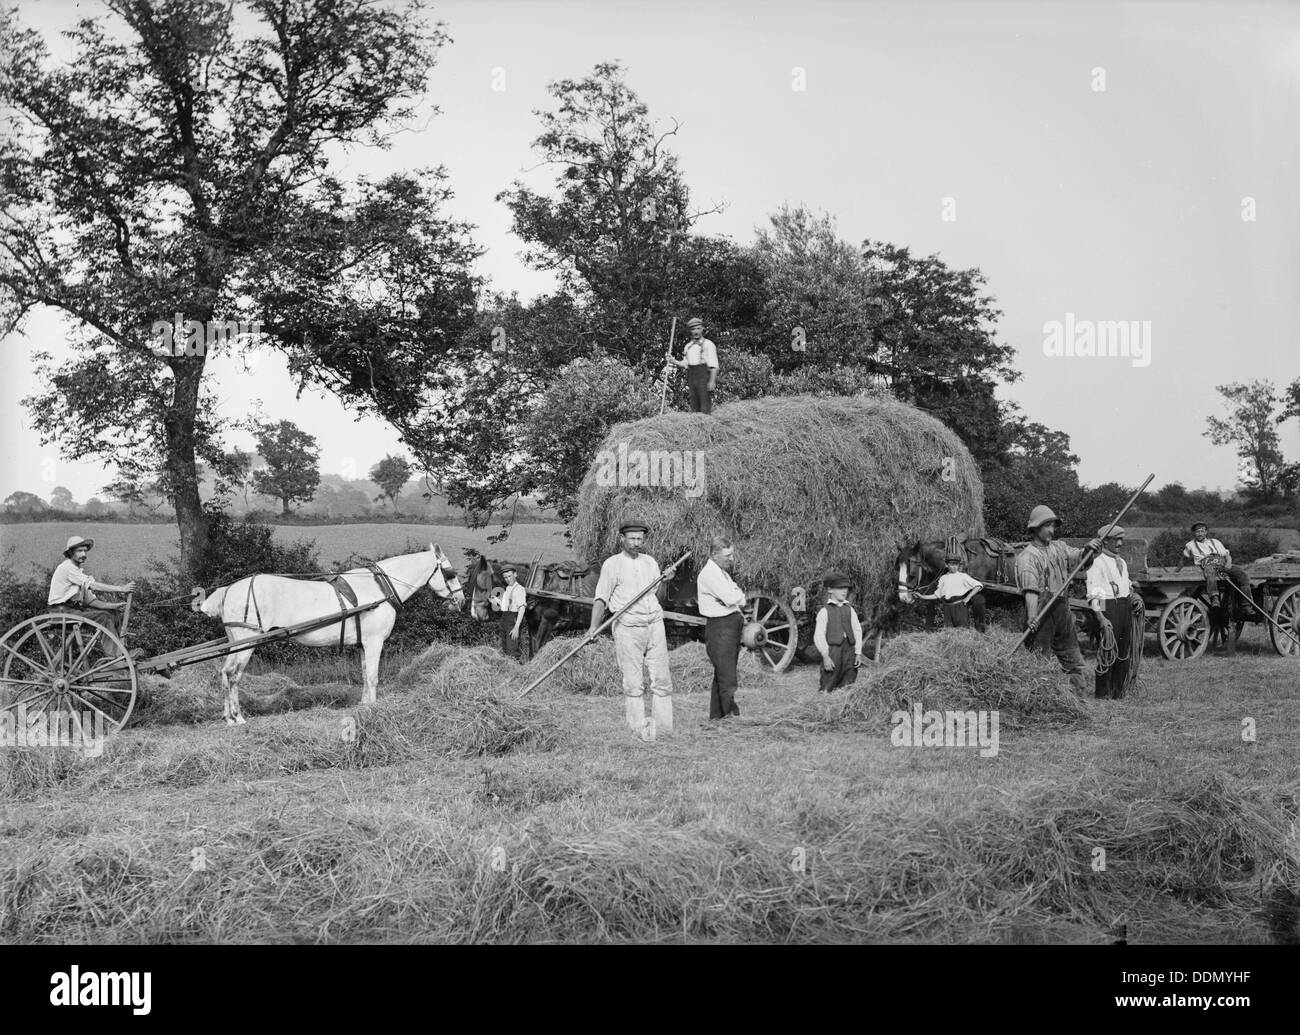 Haymaking near Byfield, Northamptonshire, 1908. Artist: A Newton - Stock Image